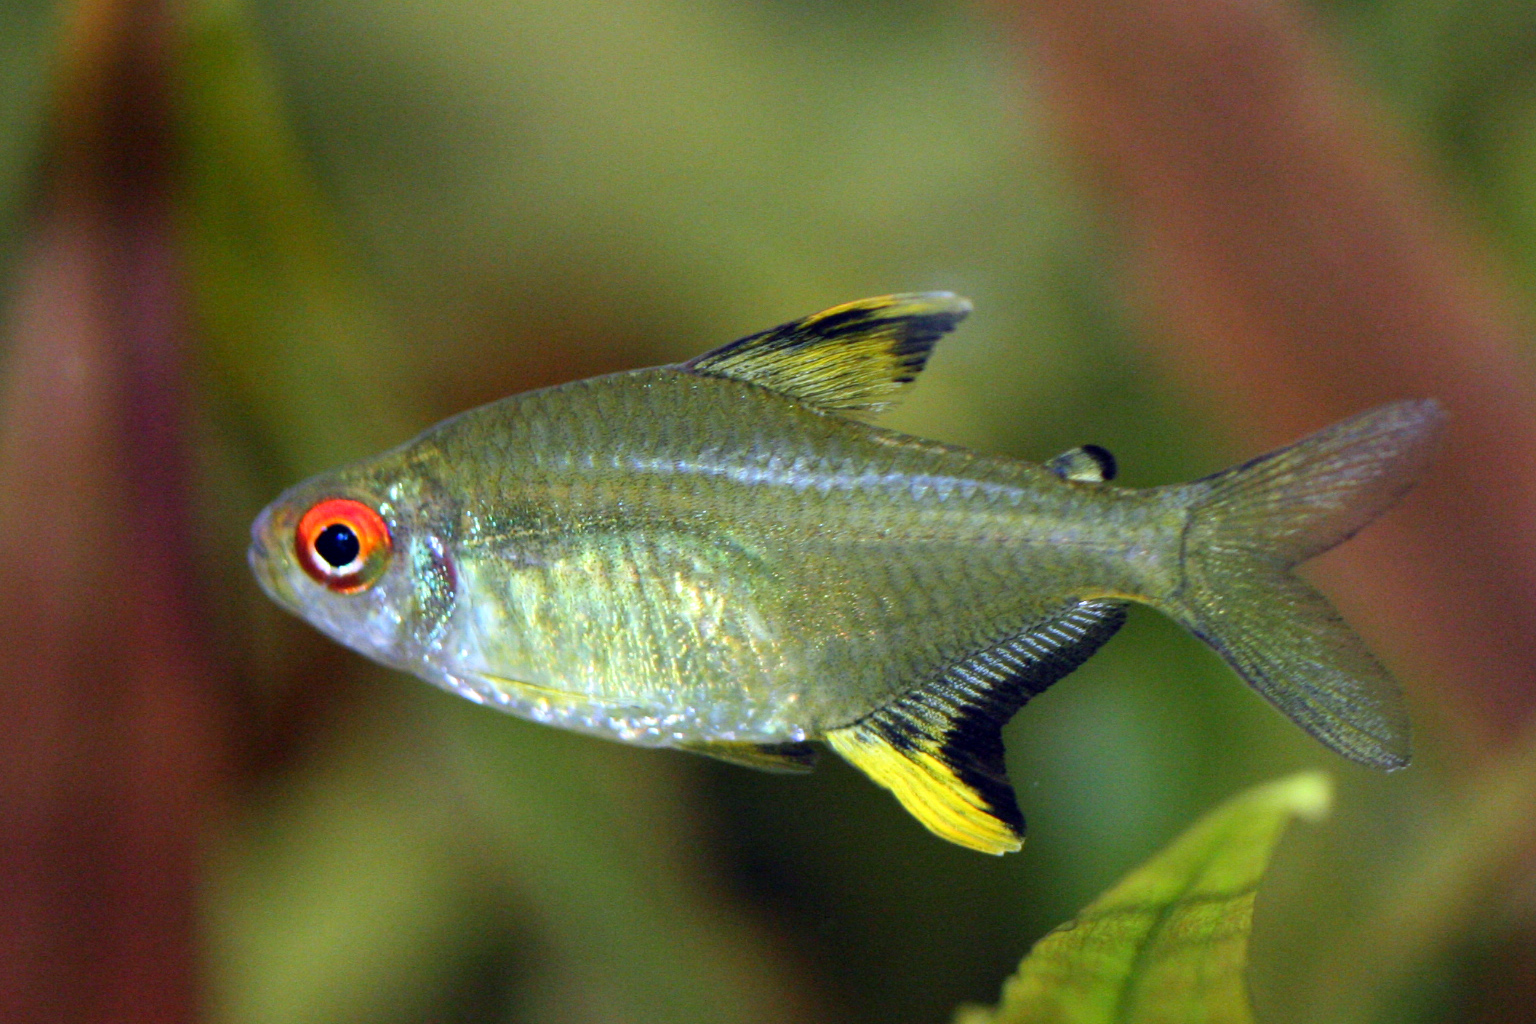 How to keep appropriate aquarium chemistry for lemon tetra for Types of tetra fish